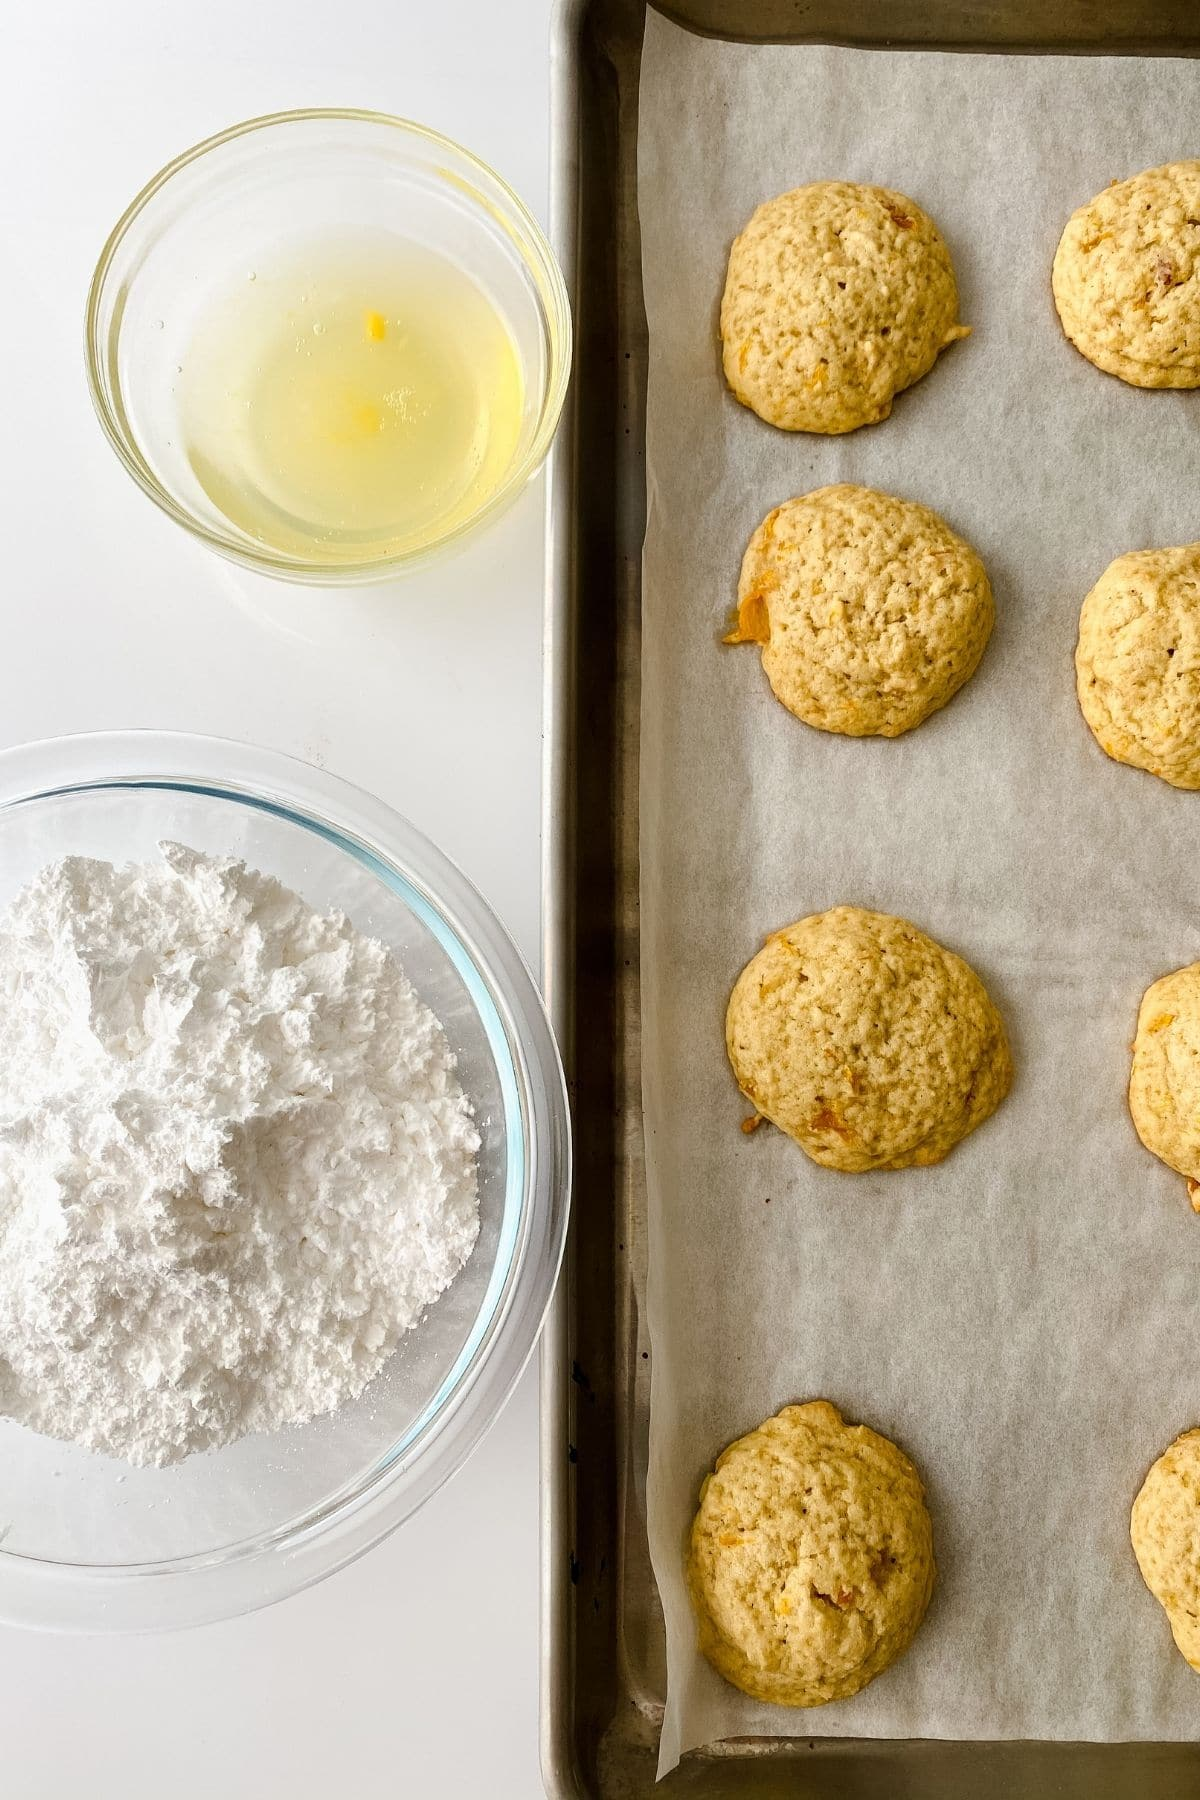 Baked cookies on baking sheet with bowl of powdered sugar on side